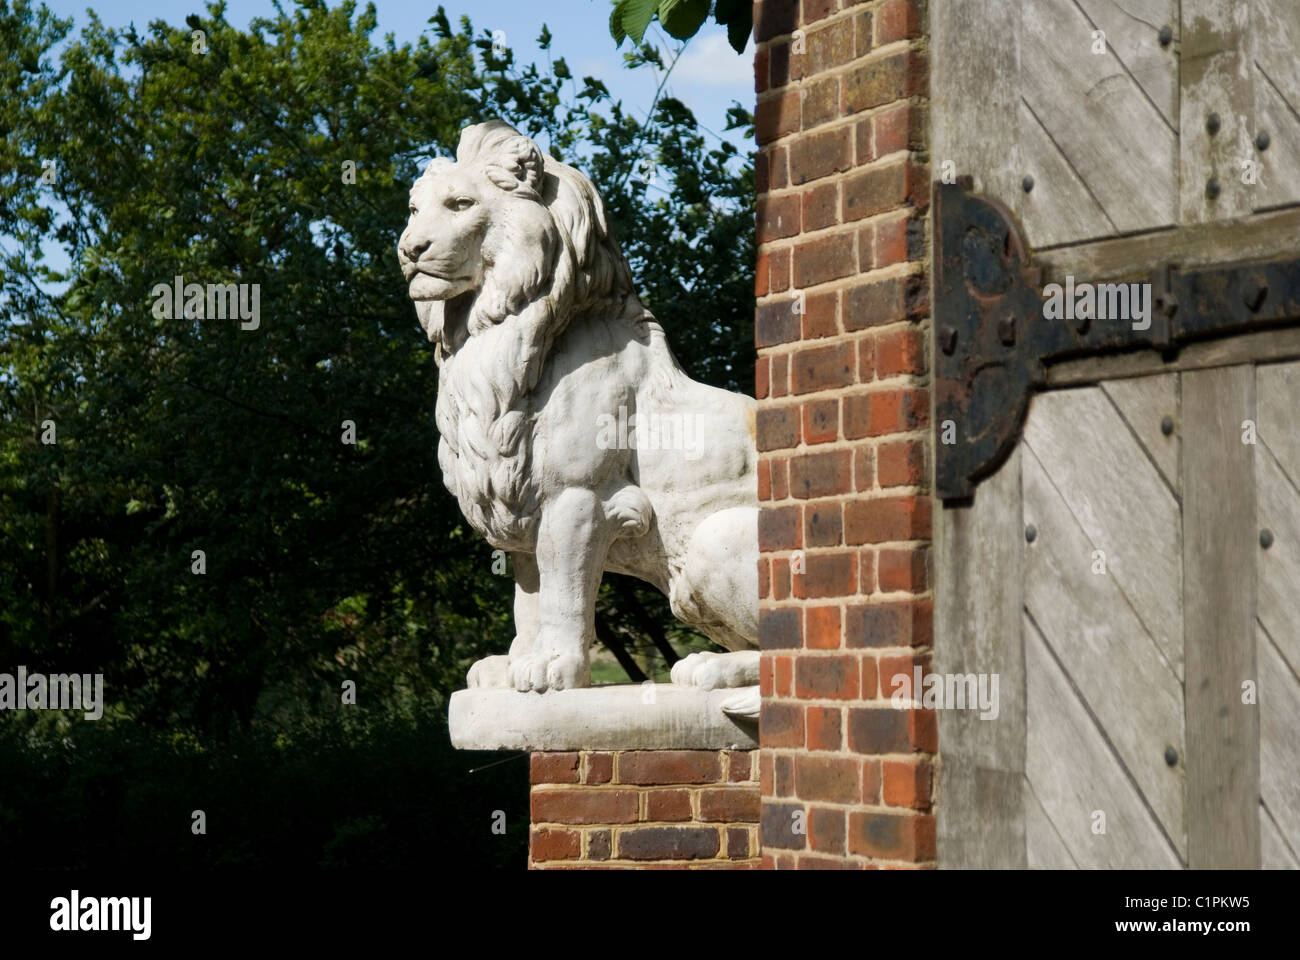 England, Suffolk Long Melford, Kentwell Hall, lion statue on corner - Stock Image